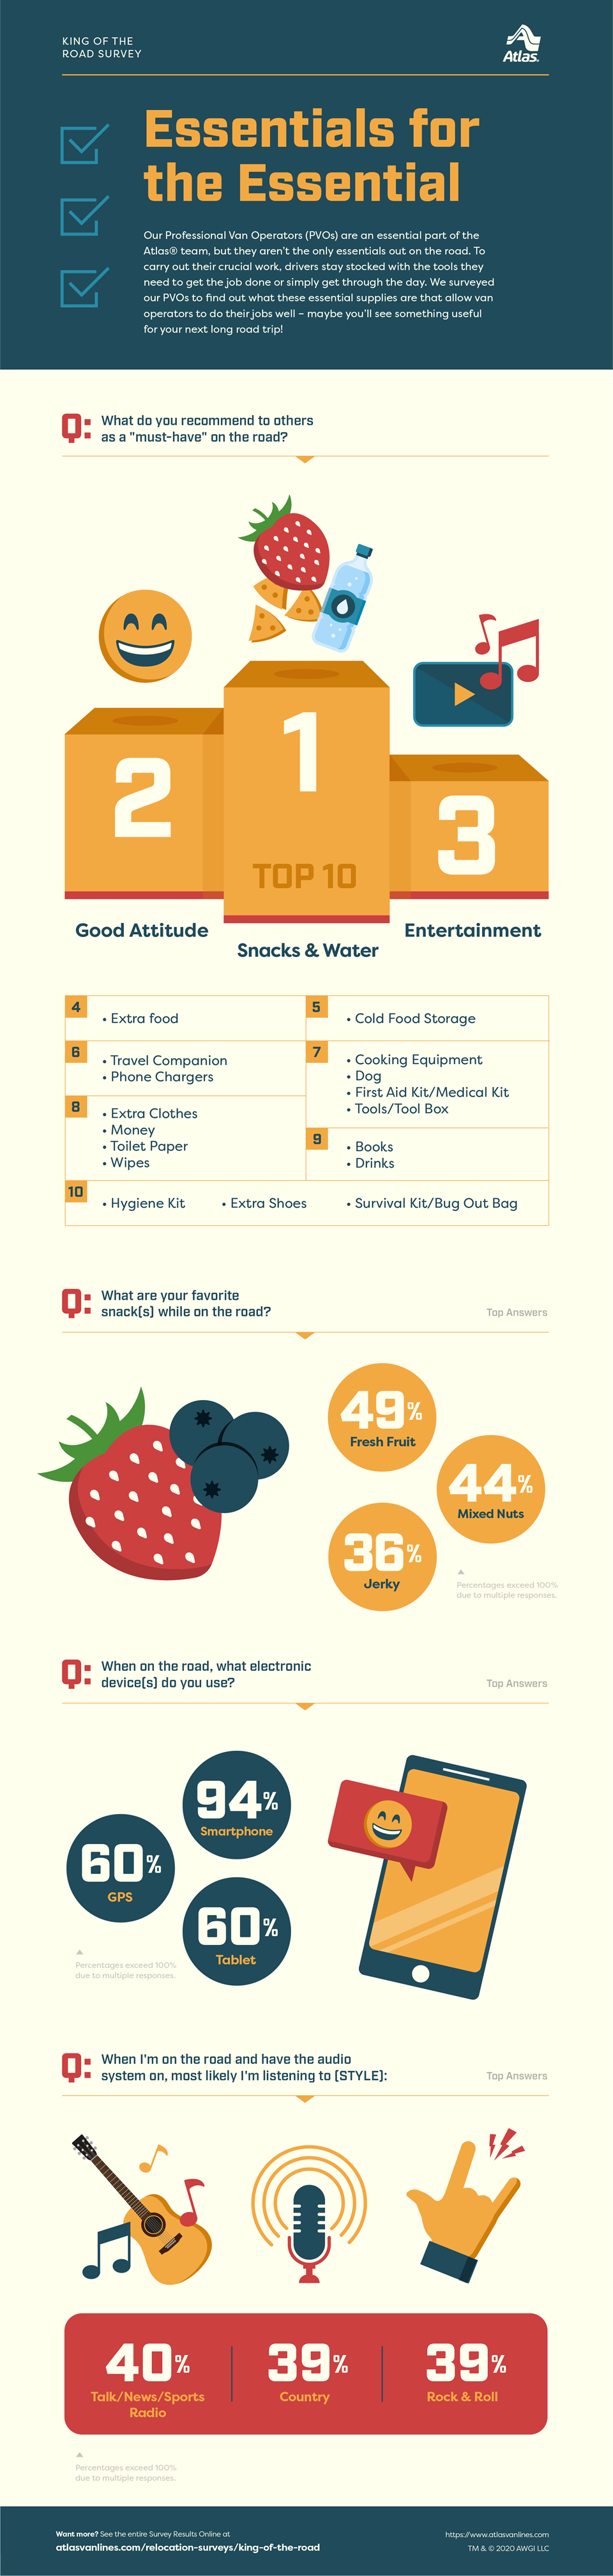 long-distance road trip essentials infographic